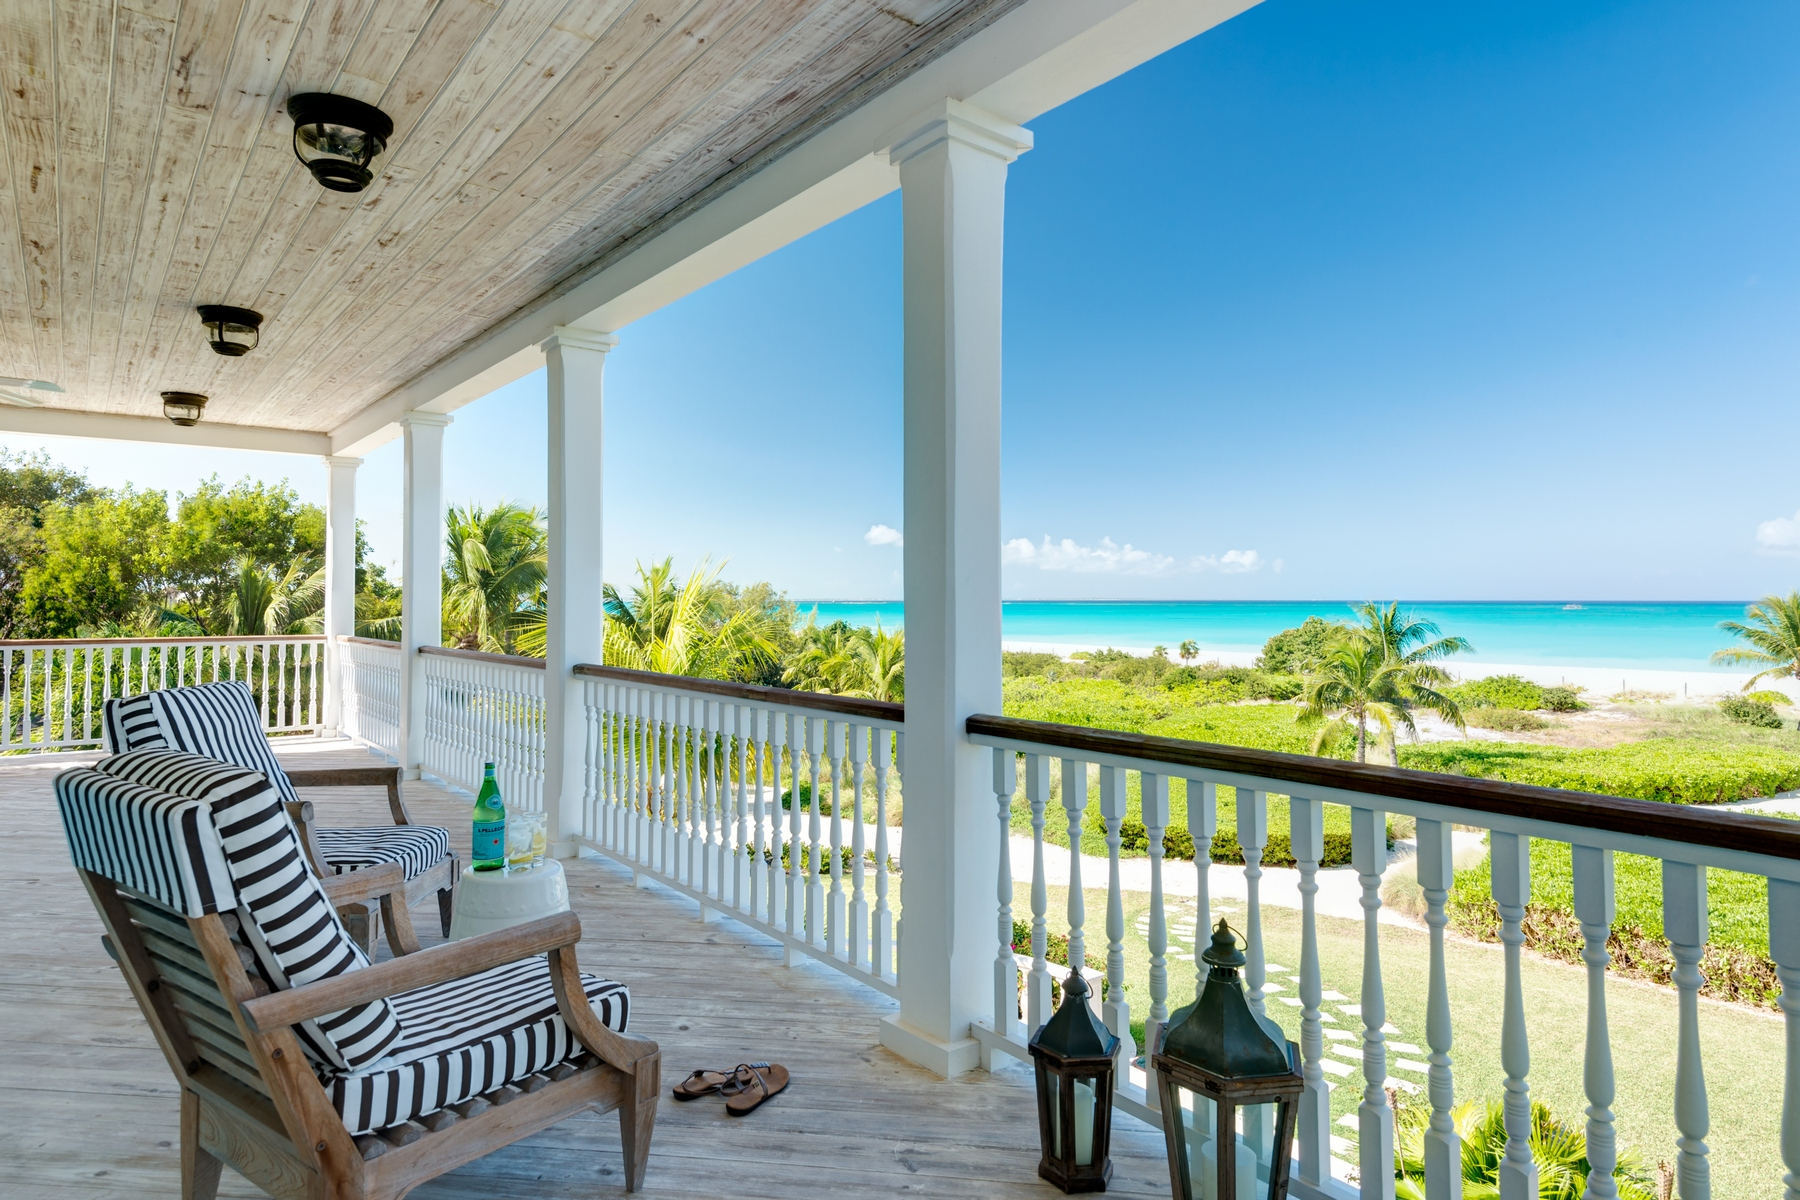 Additional photo for property listing at Amazing Grace   Vacation Rental Beachfront Grace Bay, Providenciales TCI BWI Islas Turcas Y Caicos